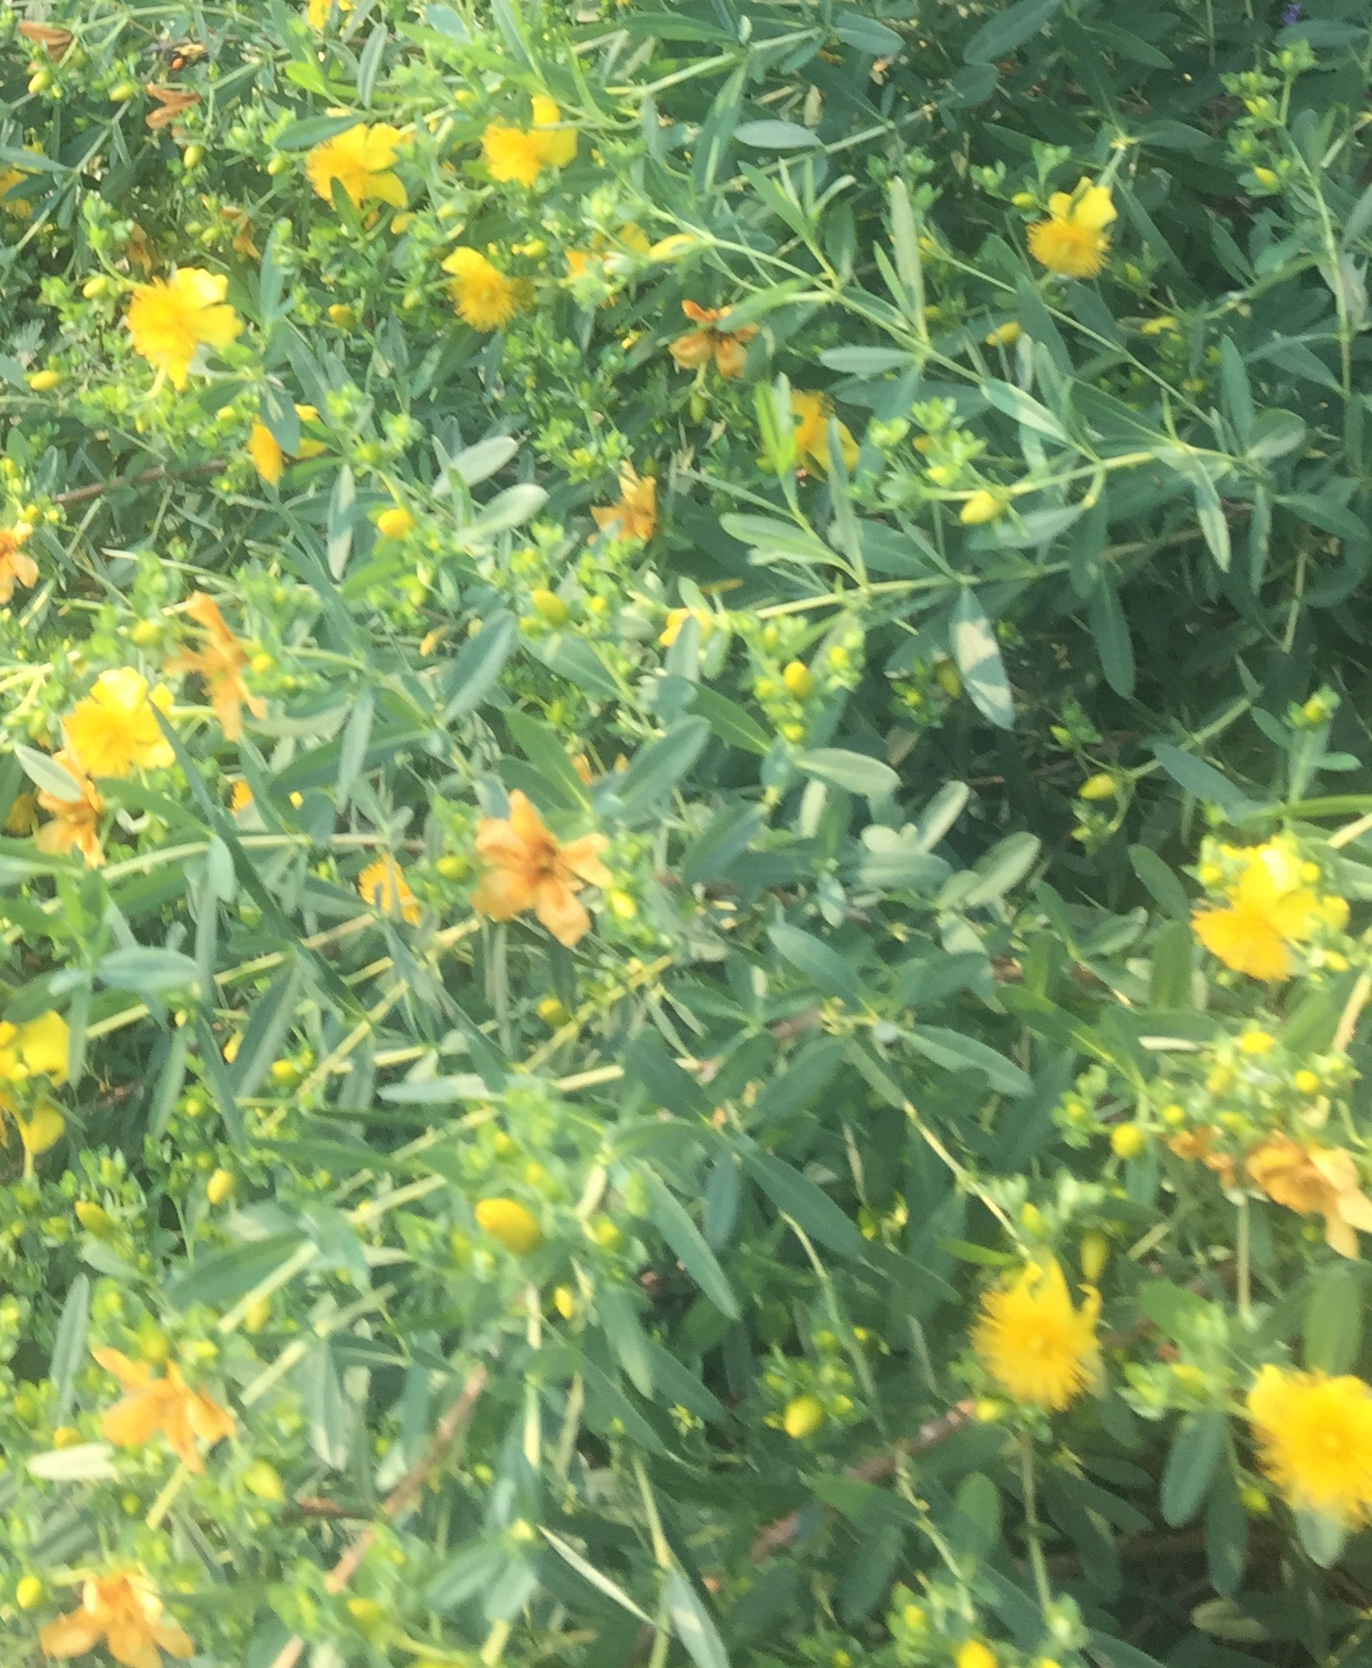 What is this shrub with yellow flowers?